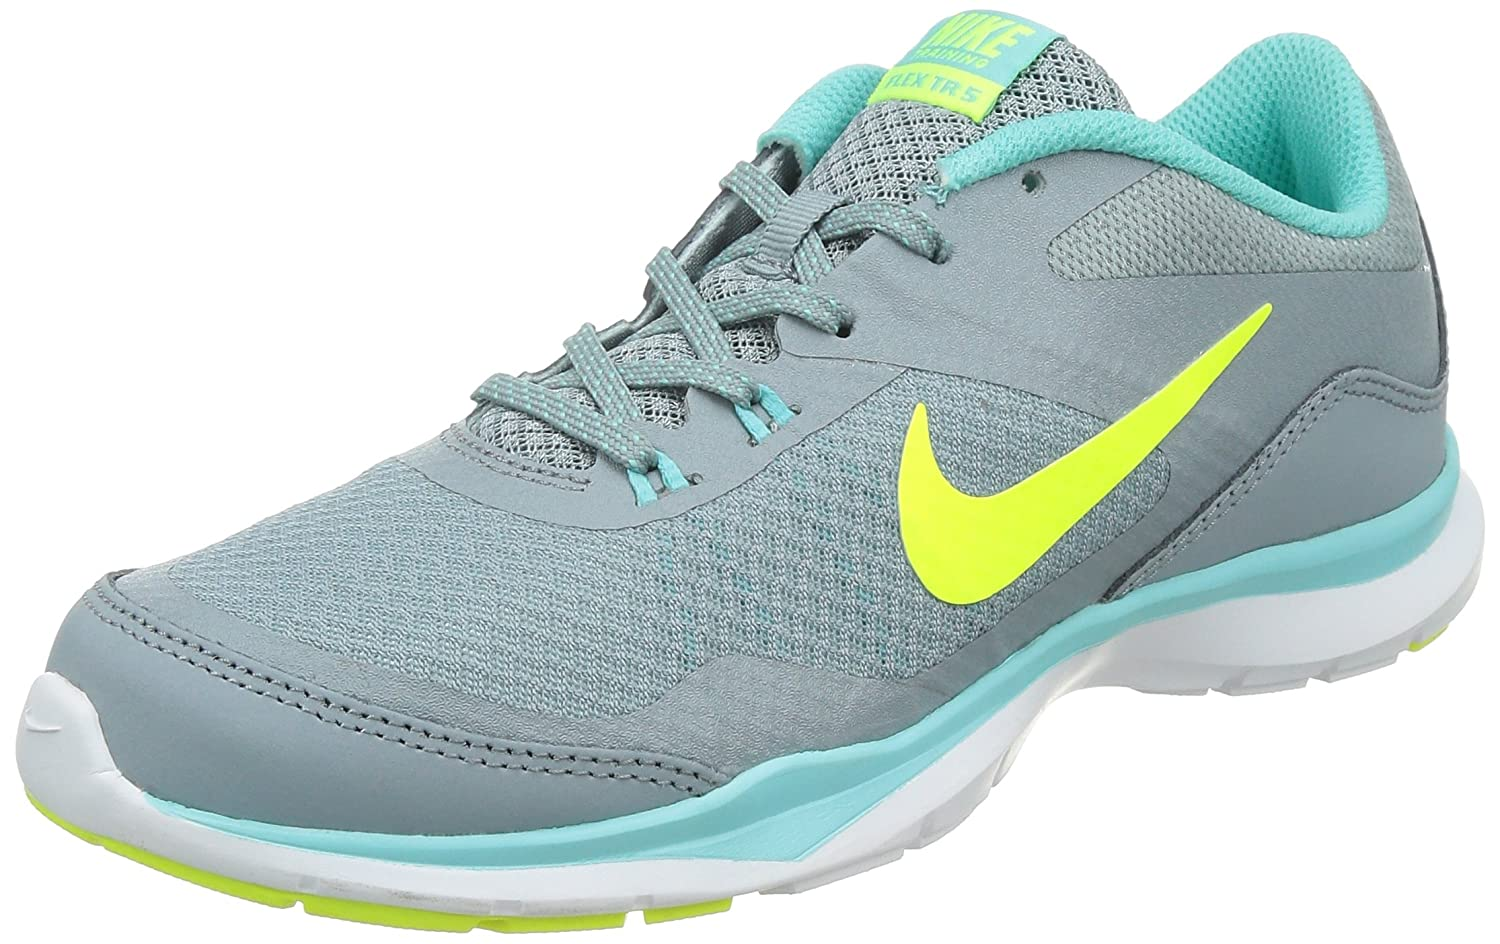 Nike Women's Flex Trainer 5 Shoe B00O1F7E8G 9 B(M) US|Dove Grey/Light Aqua/Teal Tint/Volt